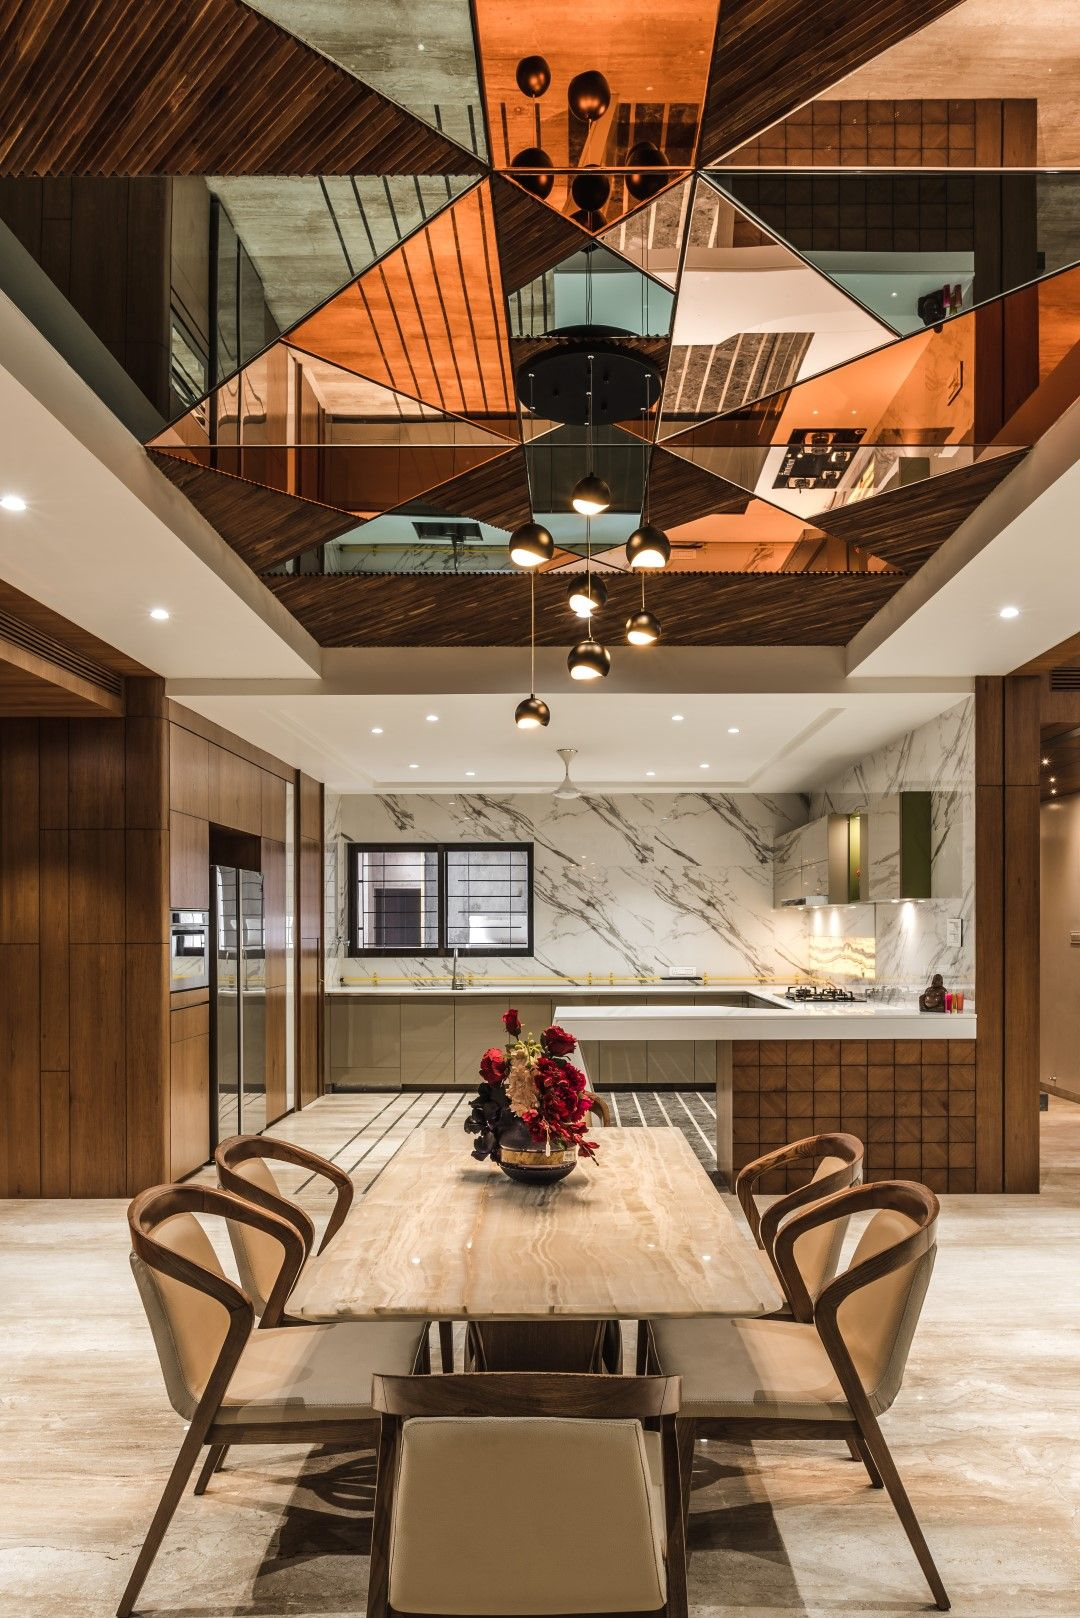 Kids Room False Ceiling Design: 100+ Modern Dining Room Decor